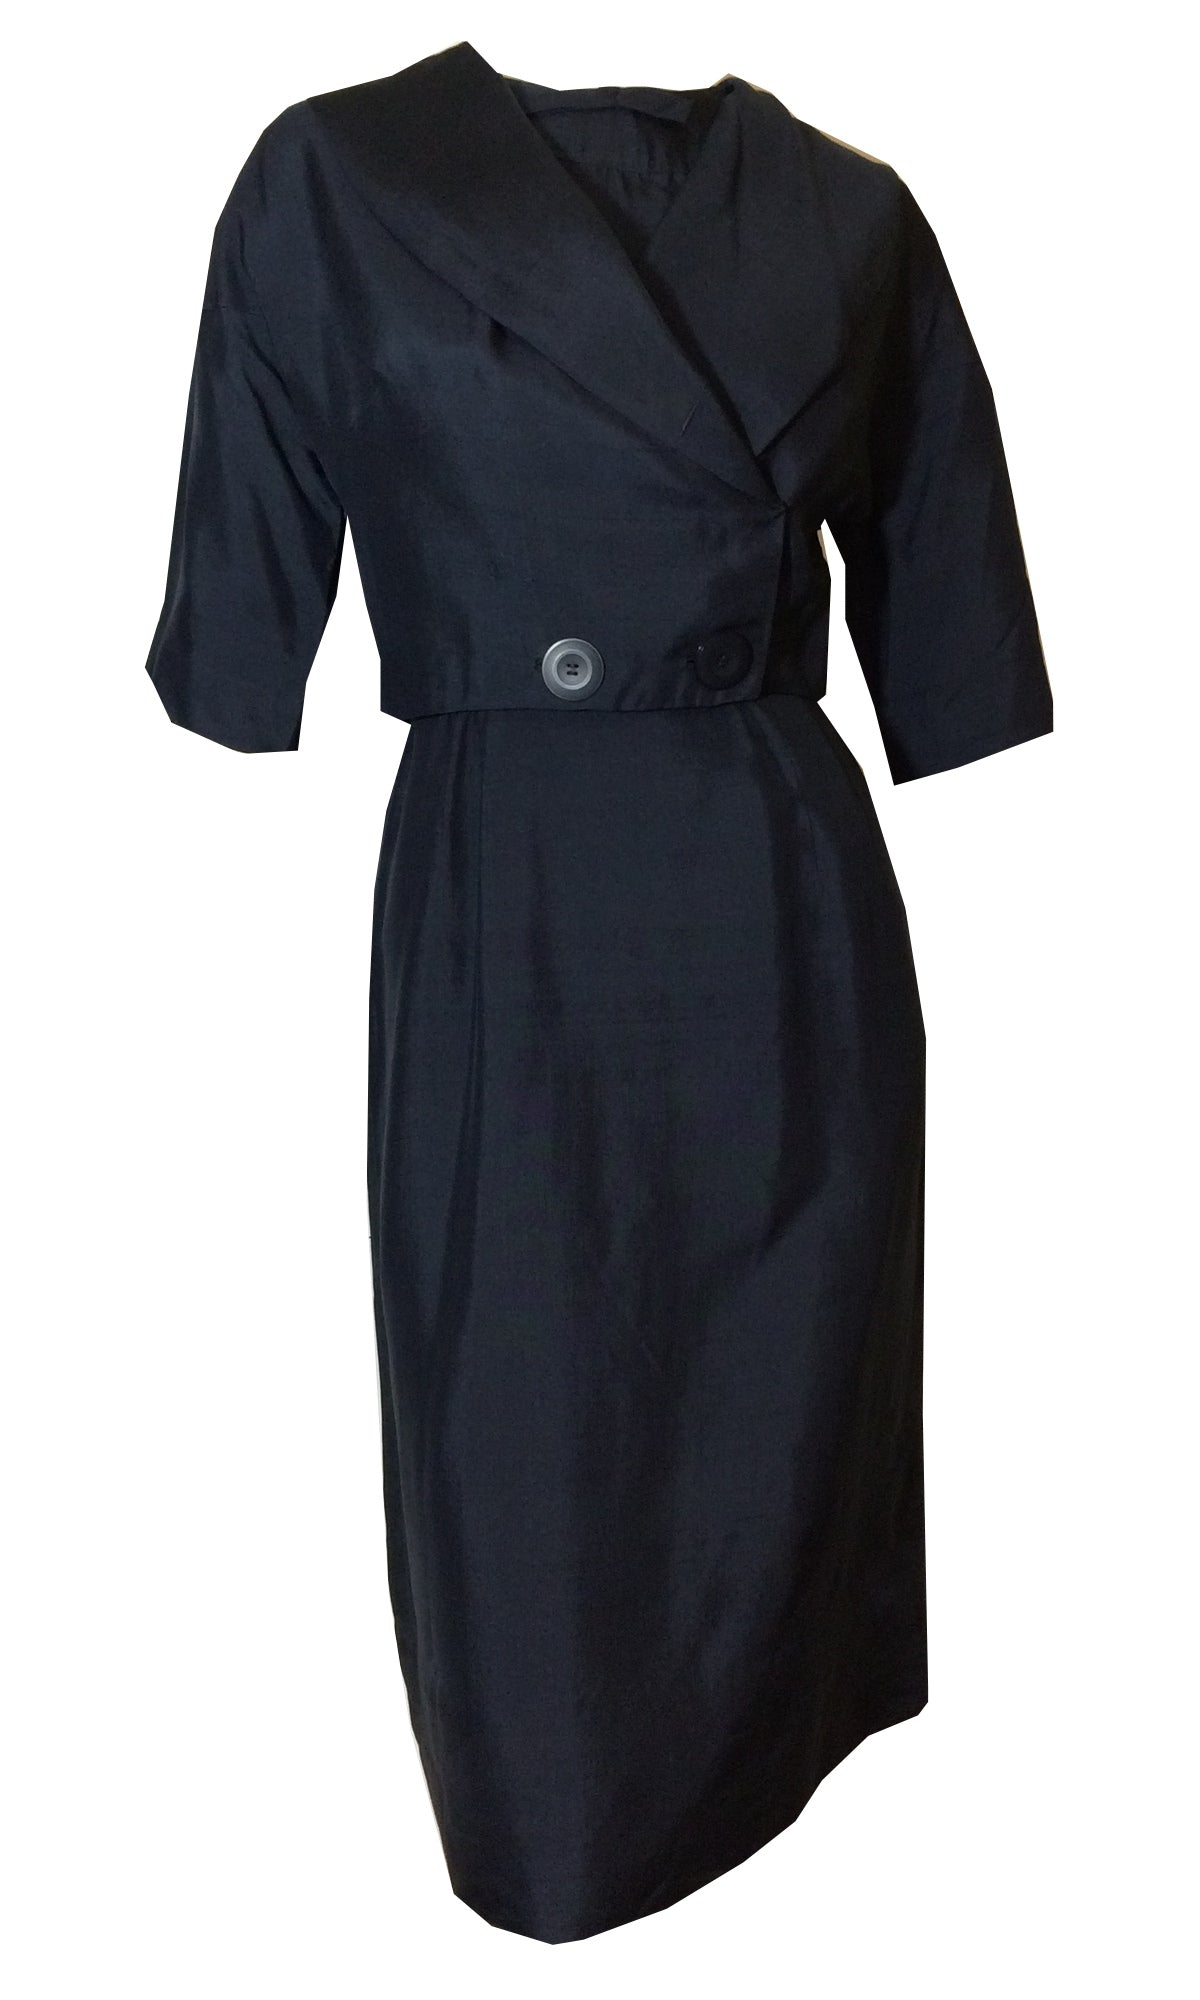 Curve Conscious Blue Bow Trimmed Dress with Cropped Jacket circa 1950s